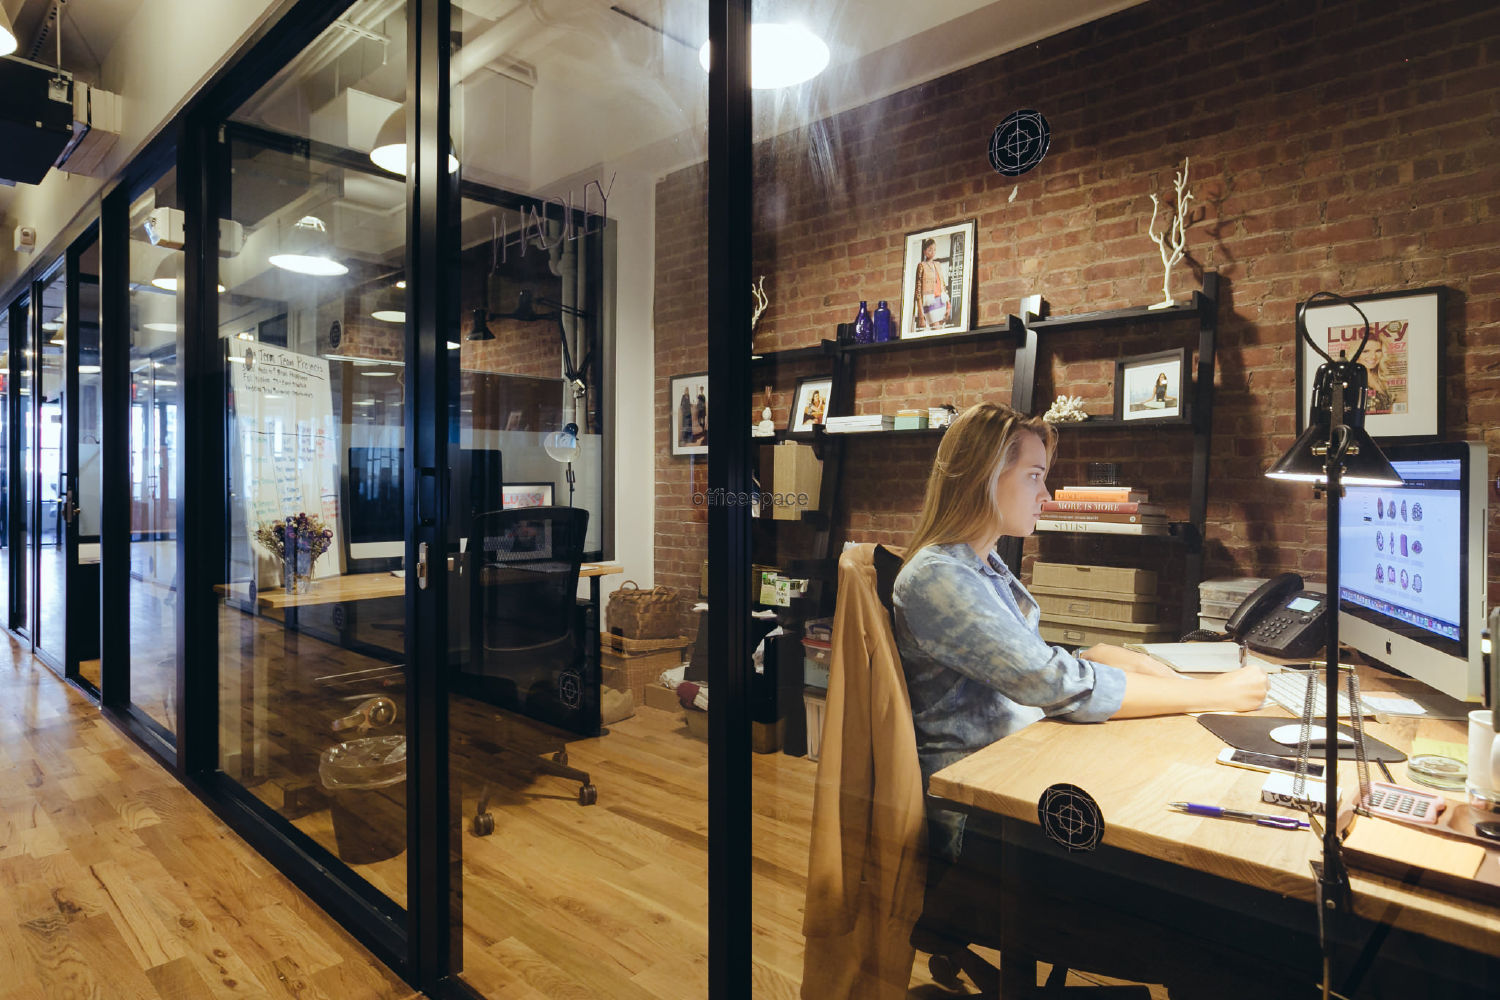 wework - 100 S State St - Chicago - IL